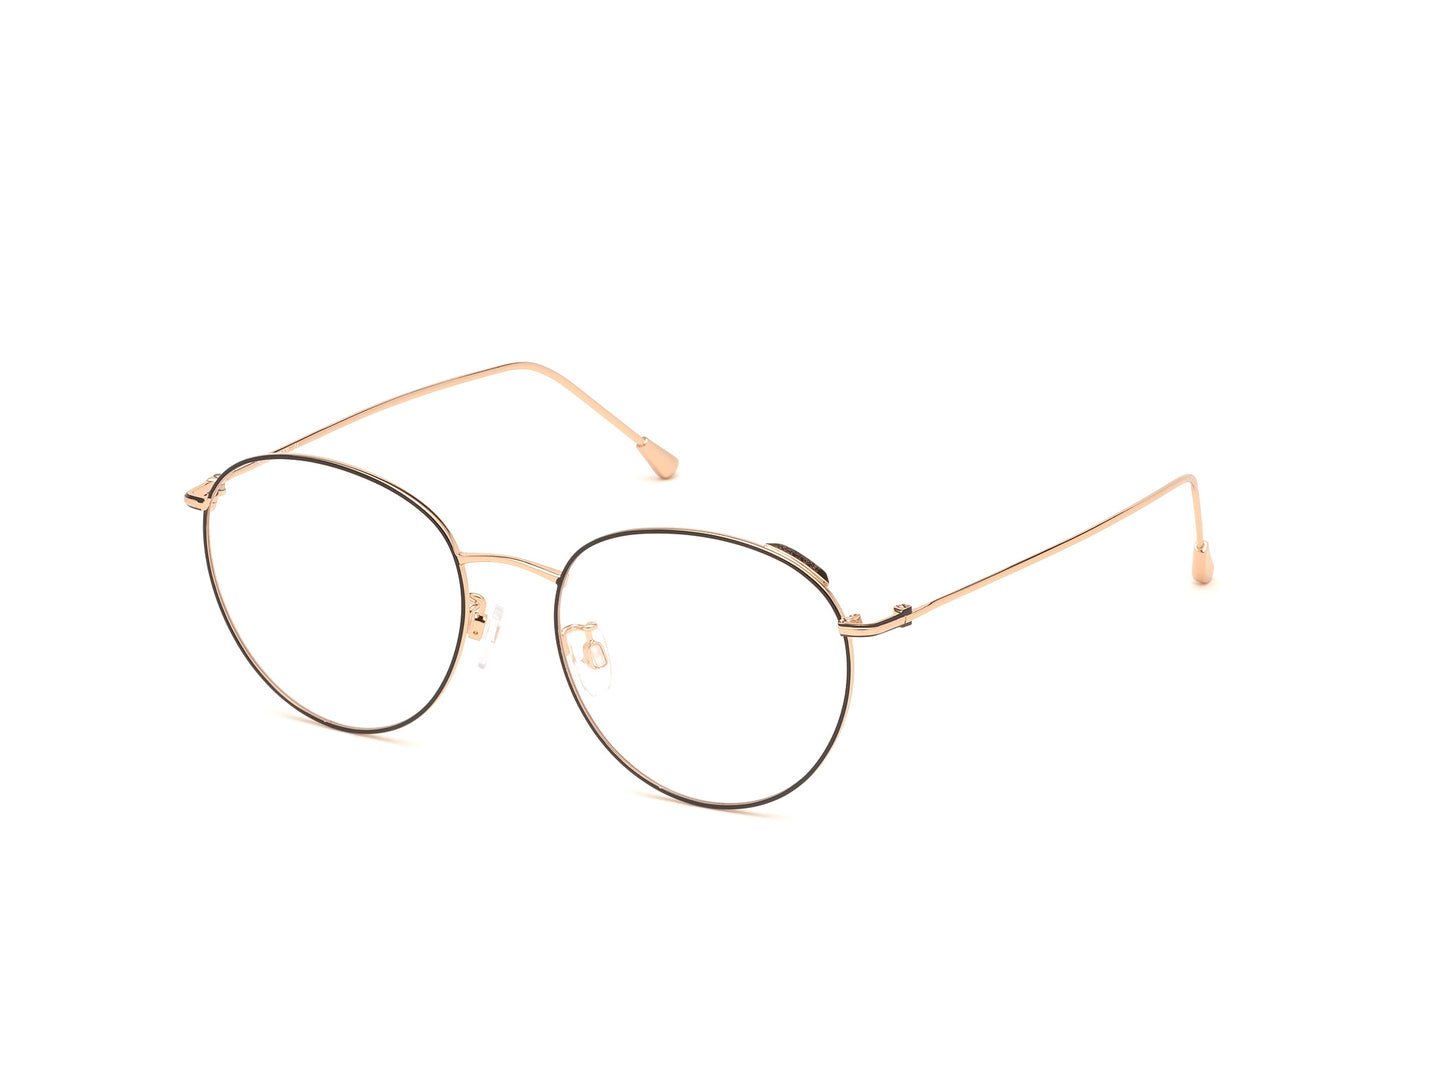 Bally Metal Frame-5002-D